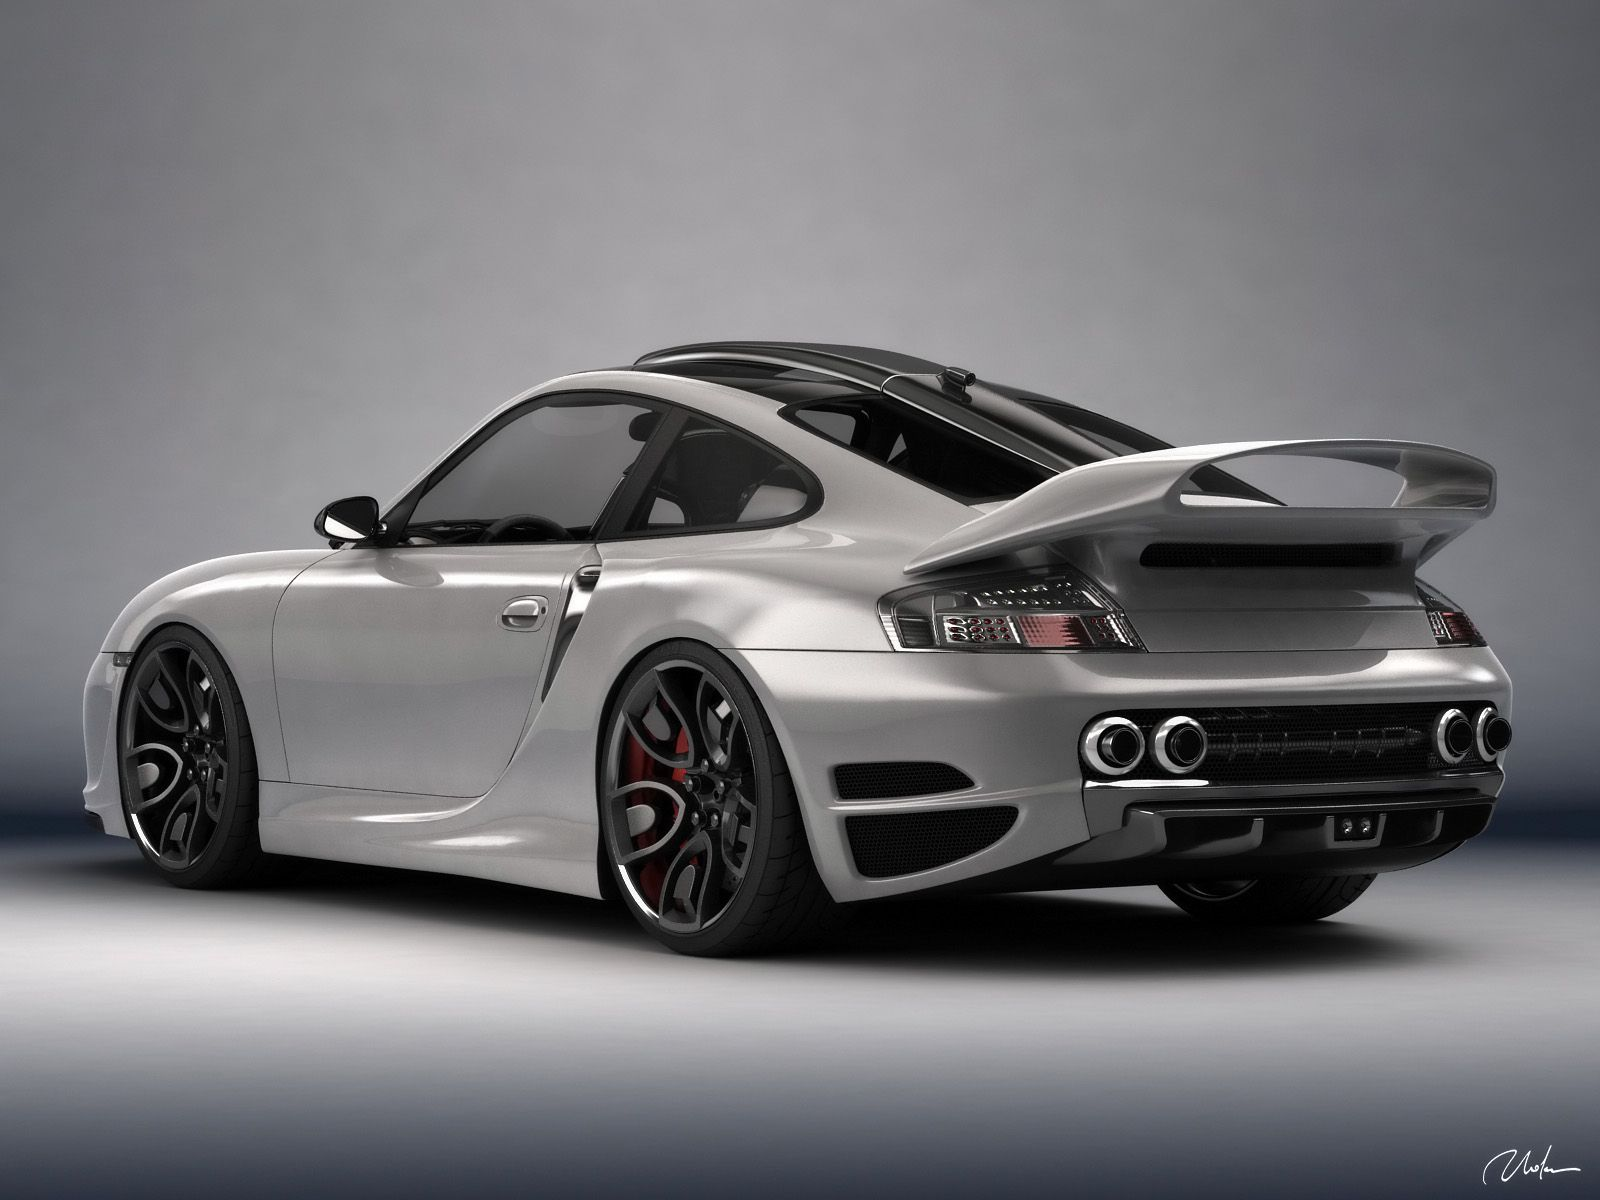 PORSCHE 911 996 TOP ART CONCEPT DESIGN BY BOGDAN URDEA - Porsche Wallpaper (31155937) - Fanpop fanclubs